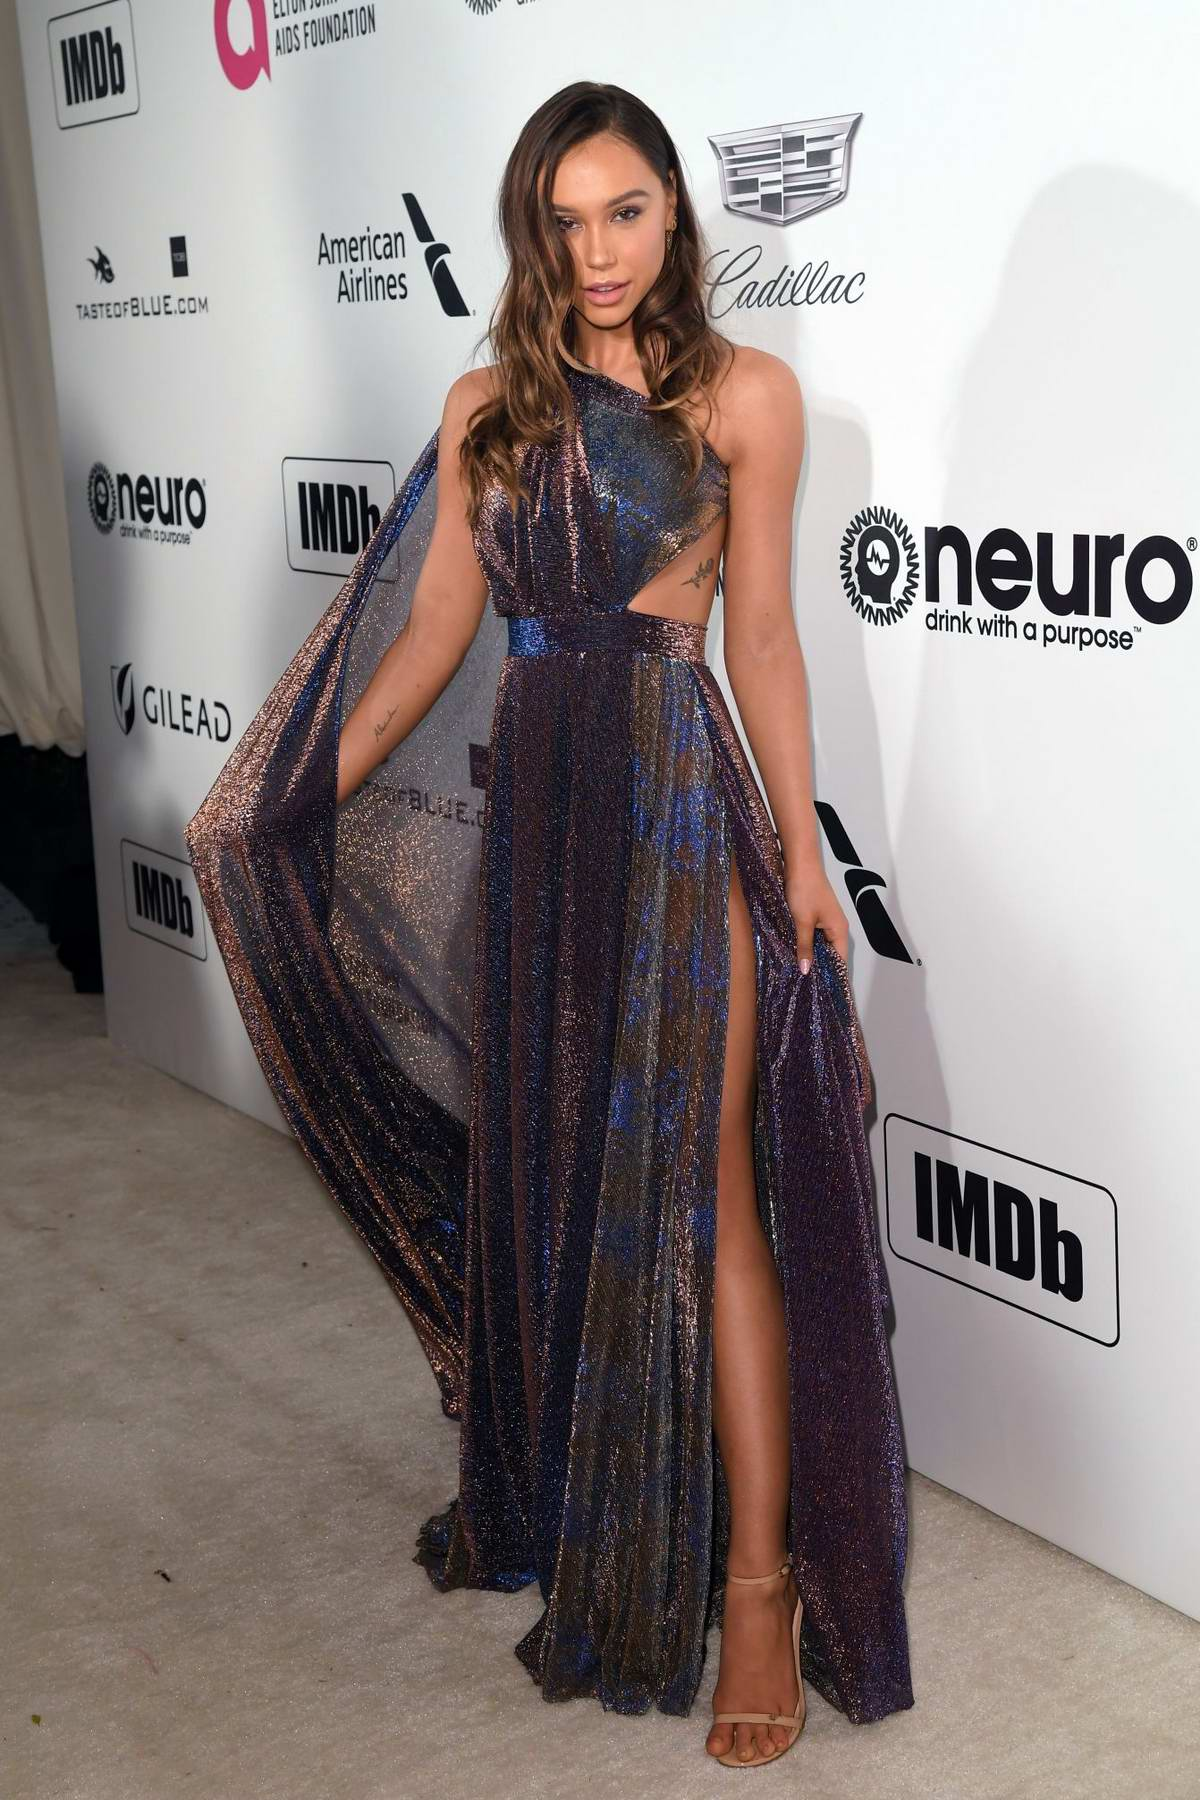 Alexis Ren attends the 27th Annual Elton John AIDS Foundation Academy Awards Viewing Party in West Hollywood, Los Angeles